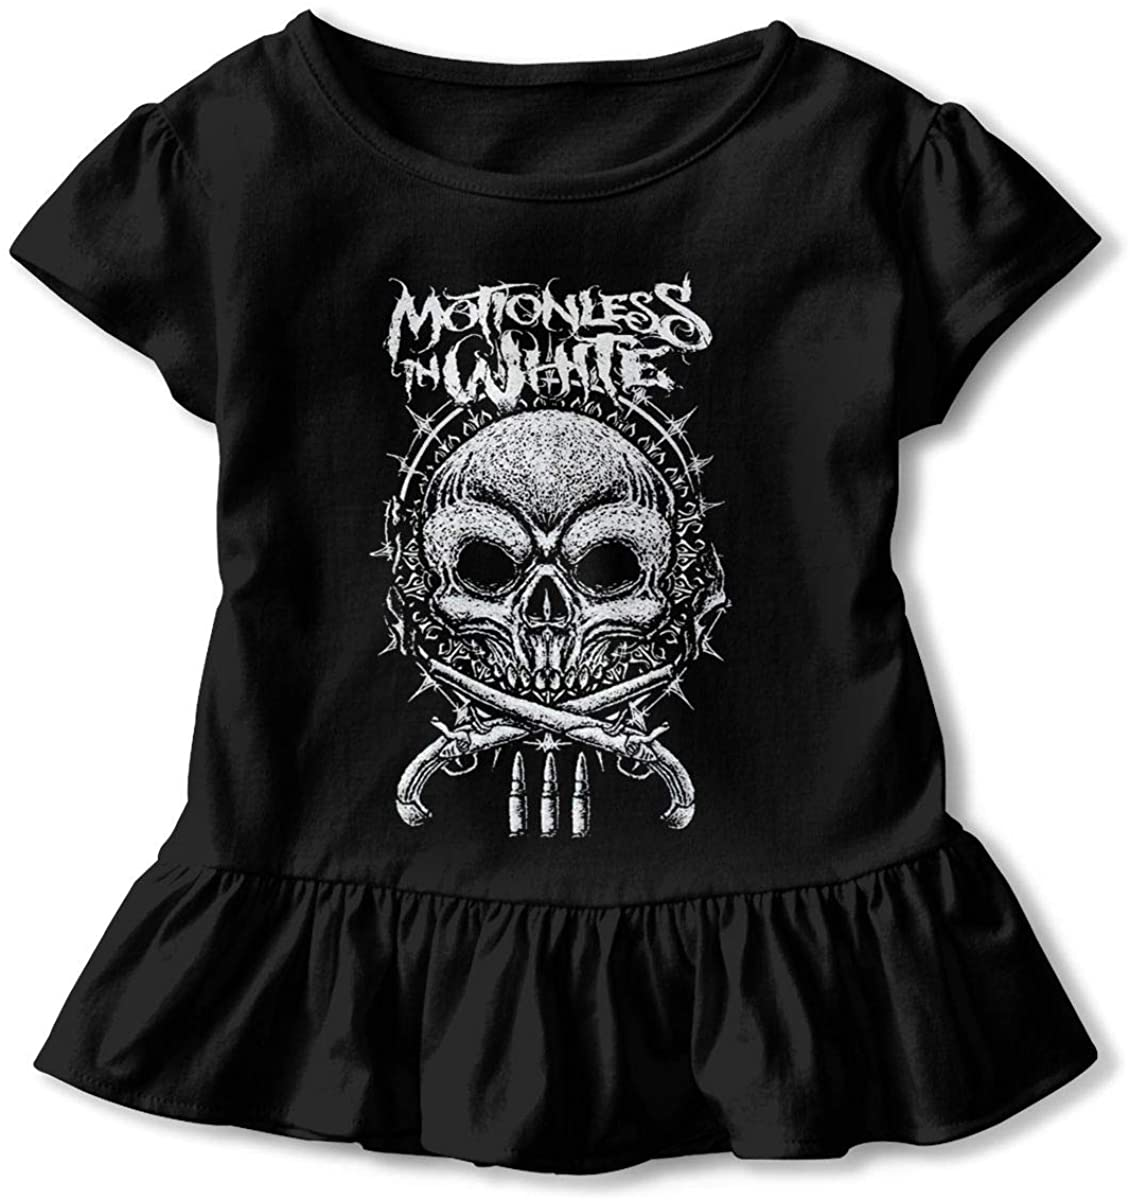 Motionless in White Baby Girls Basic Shirts Toddler Short Sleeve T-Shirts Essential Ruffle T-Shirt